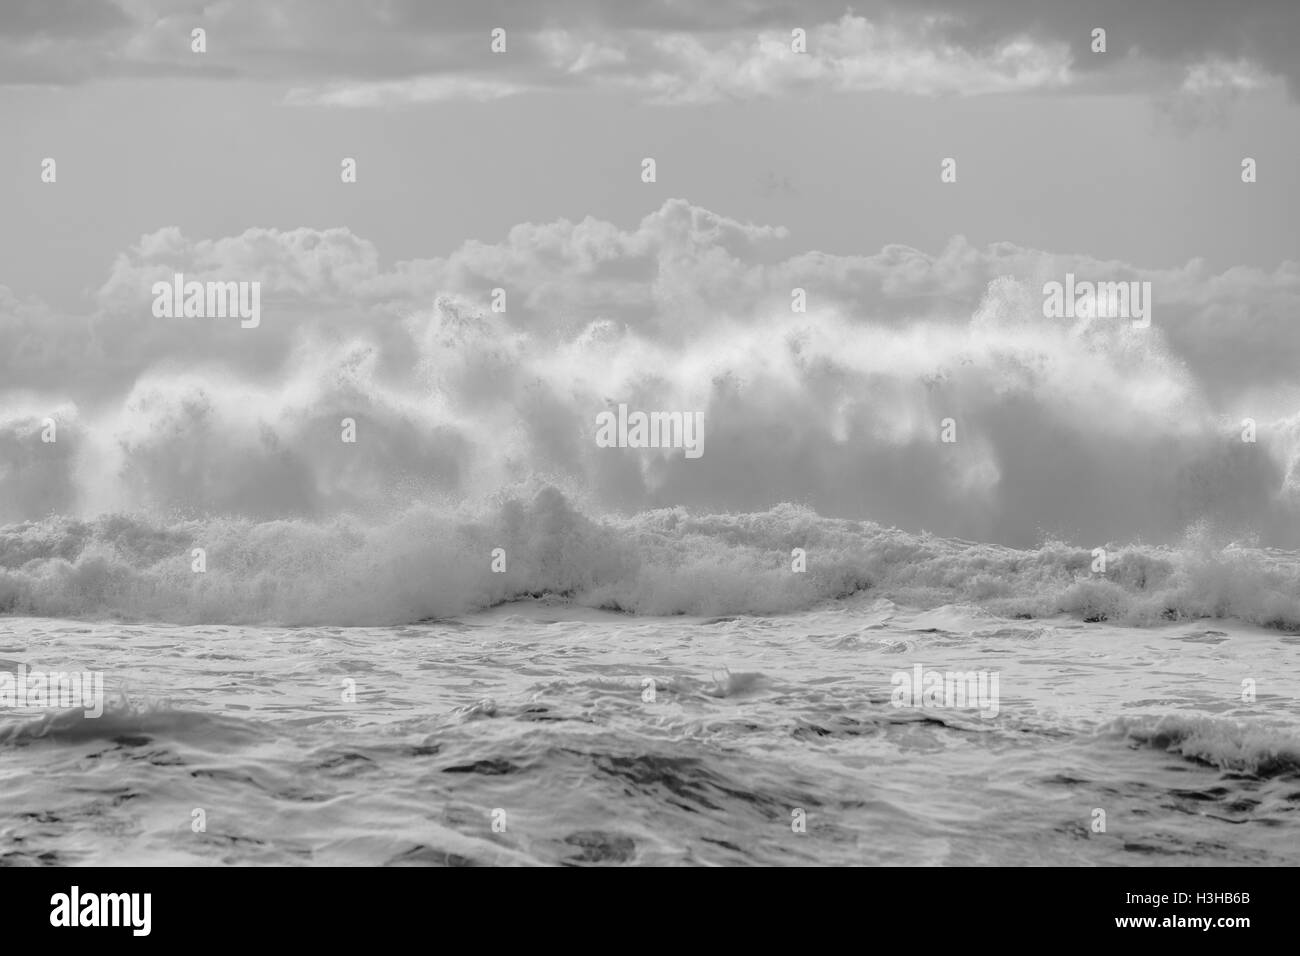 Ocean waves crashing exploding water power from weather storms, - Stock Image